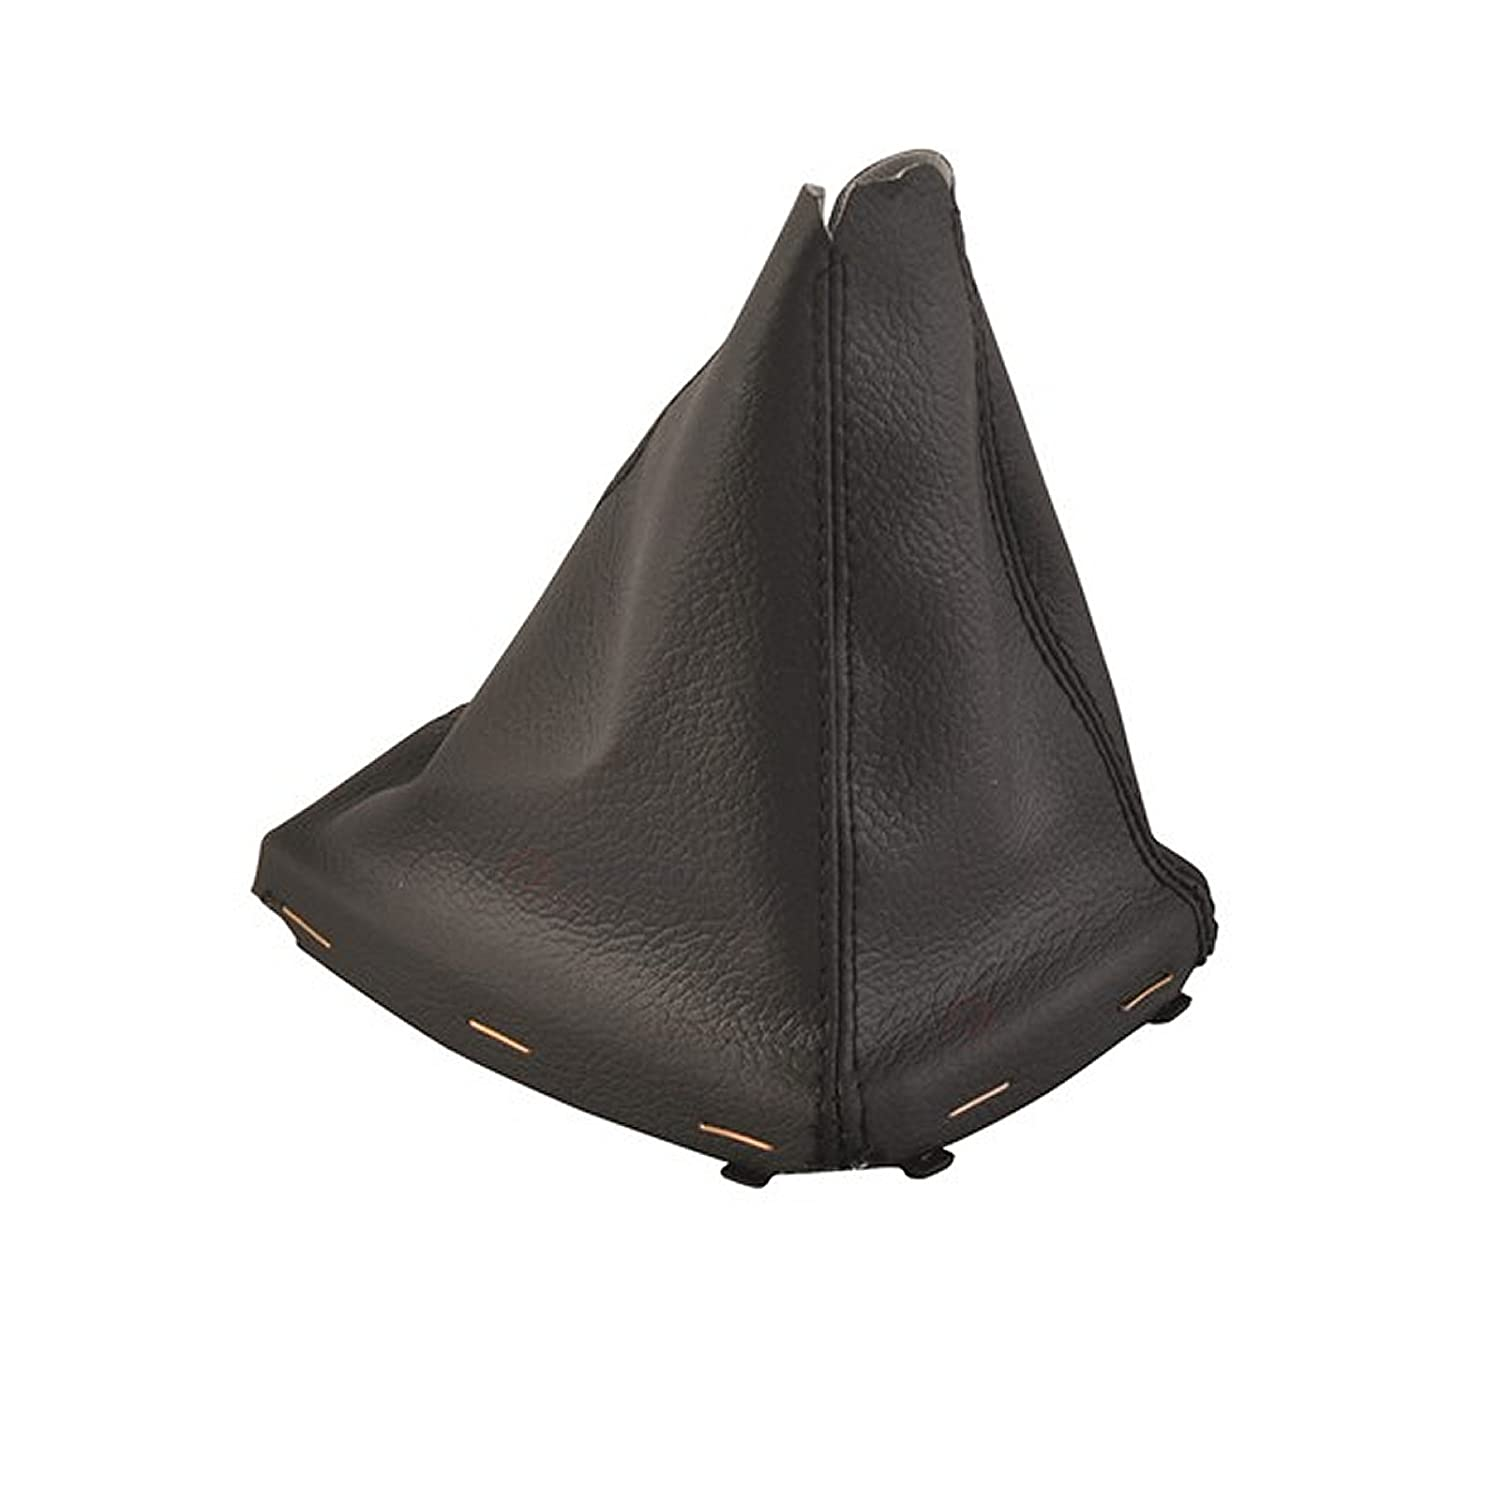 GEARSTICK GAITER BOOT COLLAR DUST COVER SOLARIS